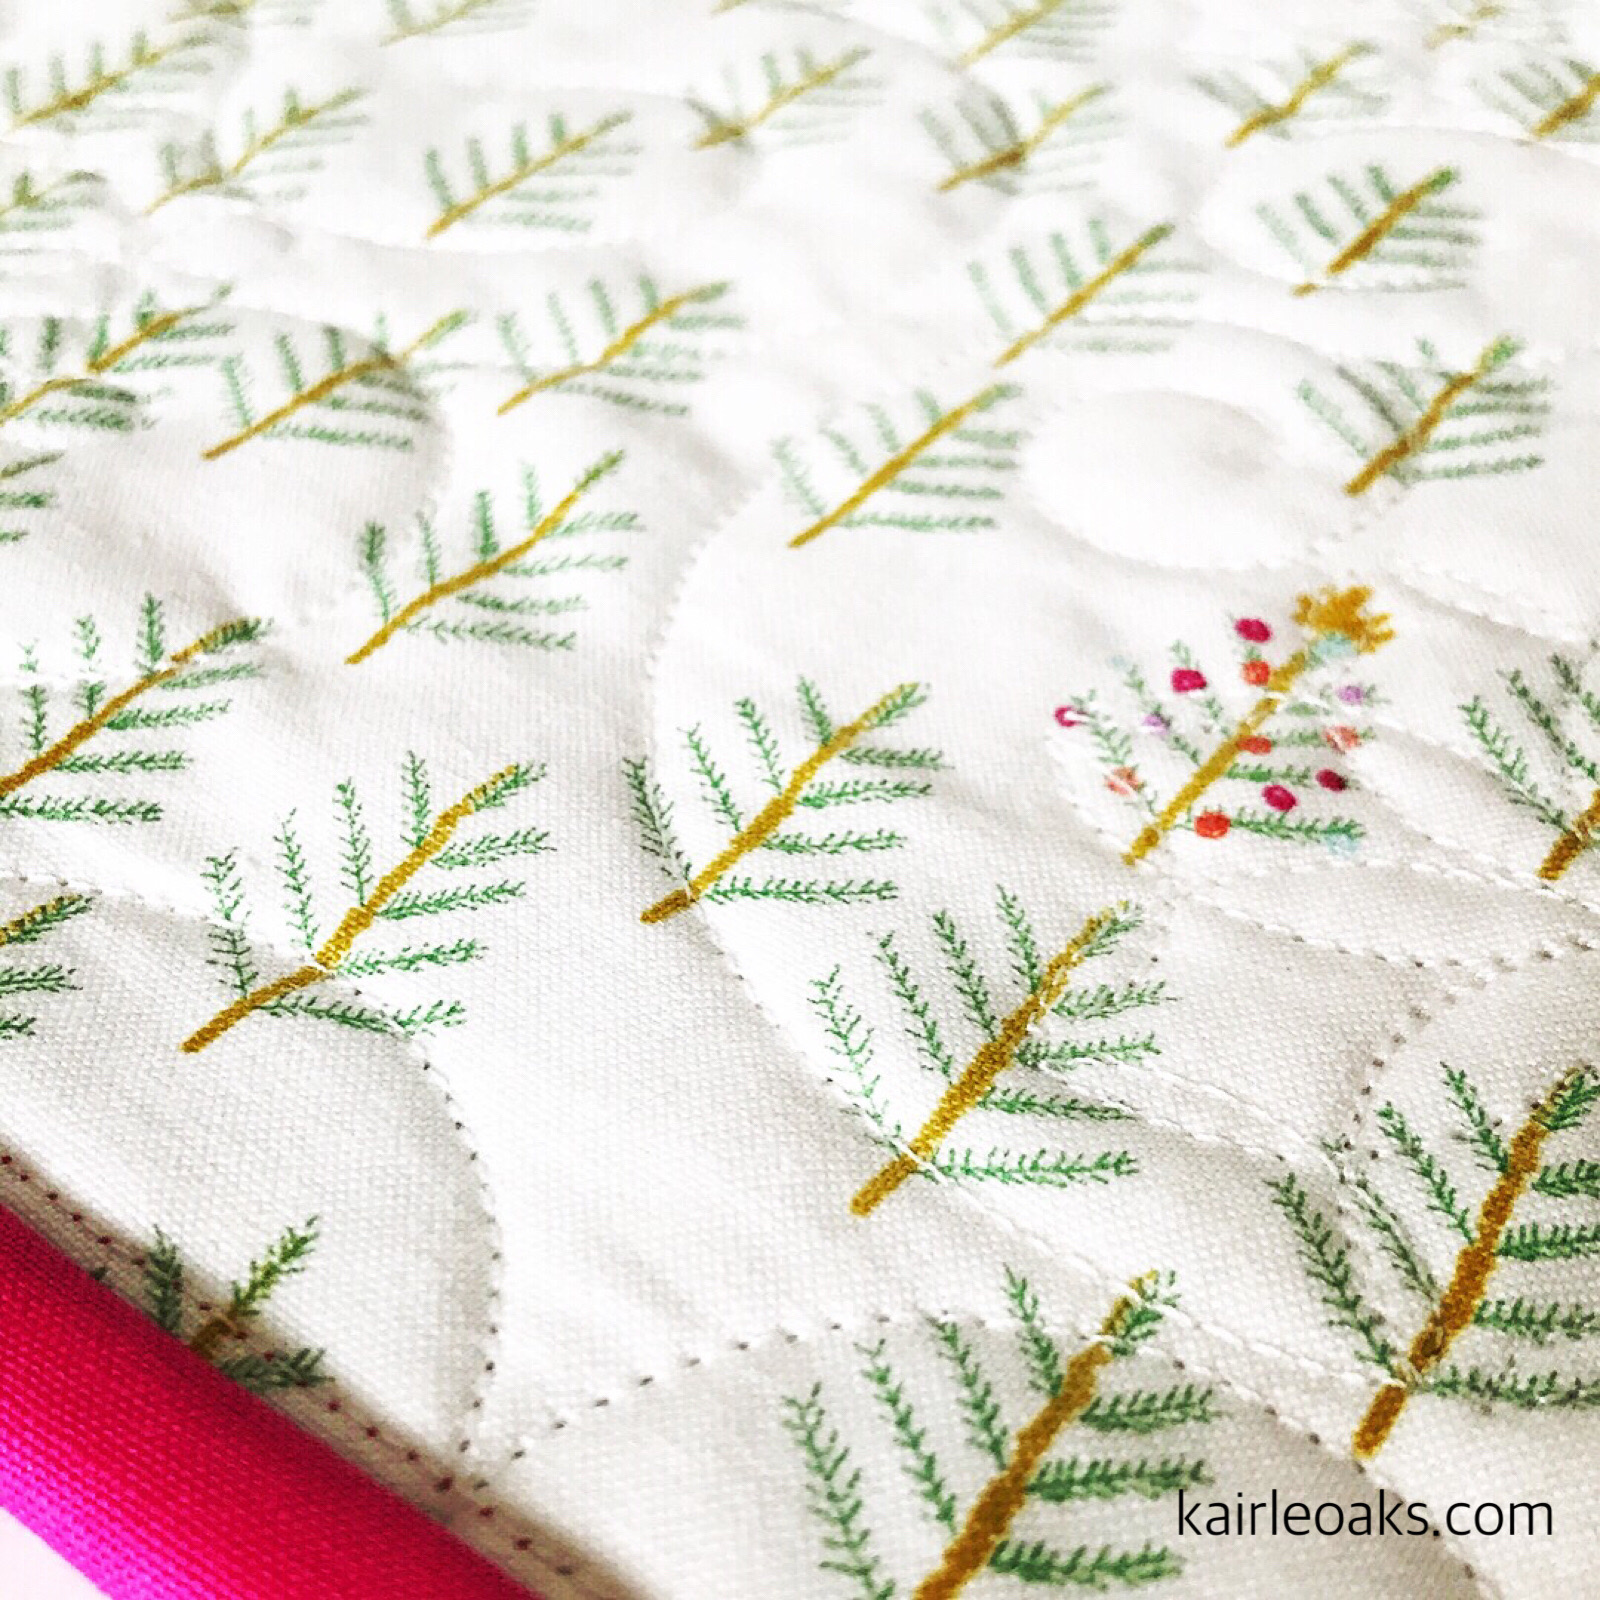 Kairle Oaks Handcrafted Goodness Fun And Funky Christmas